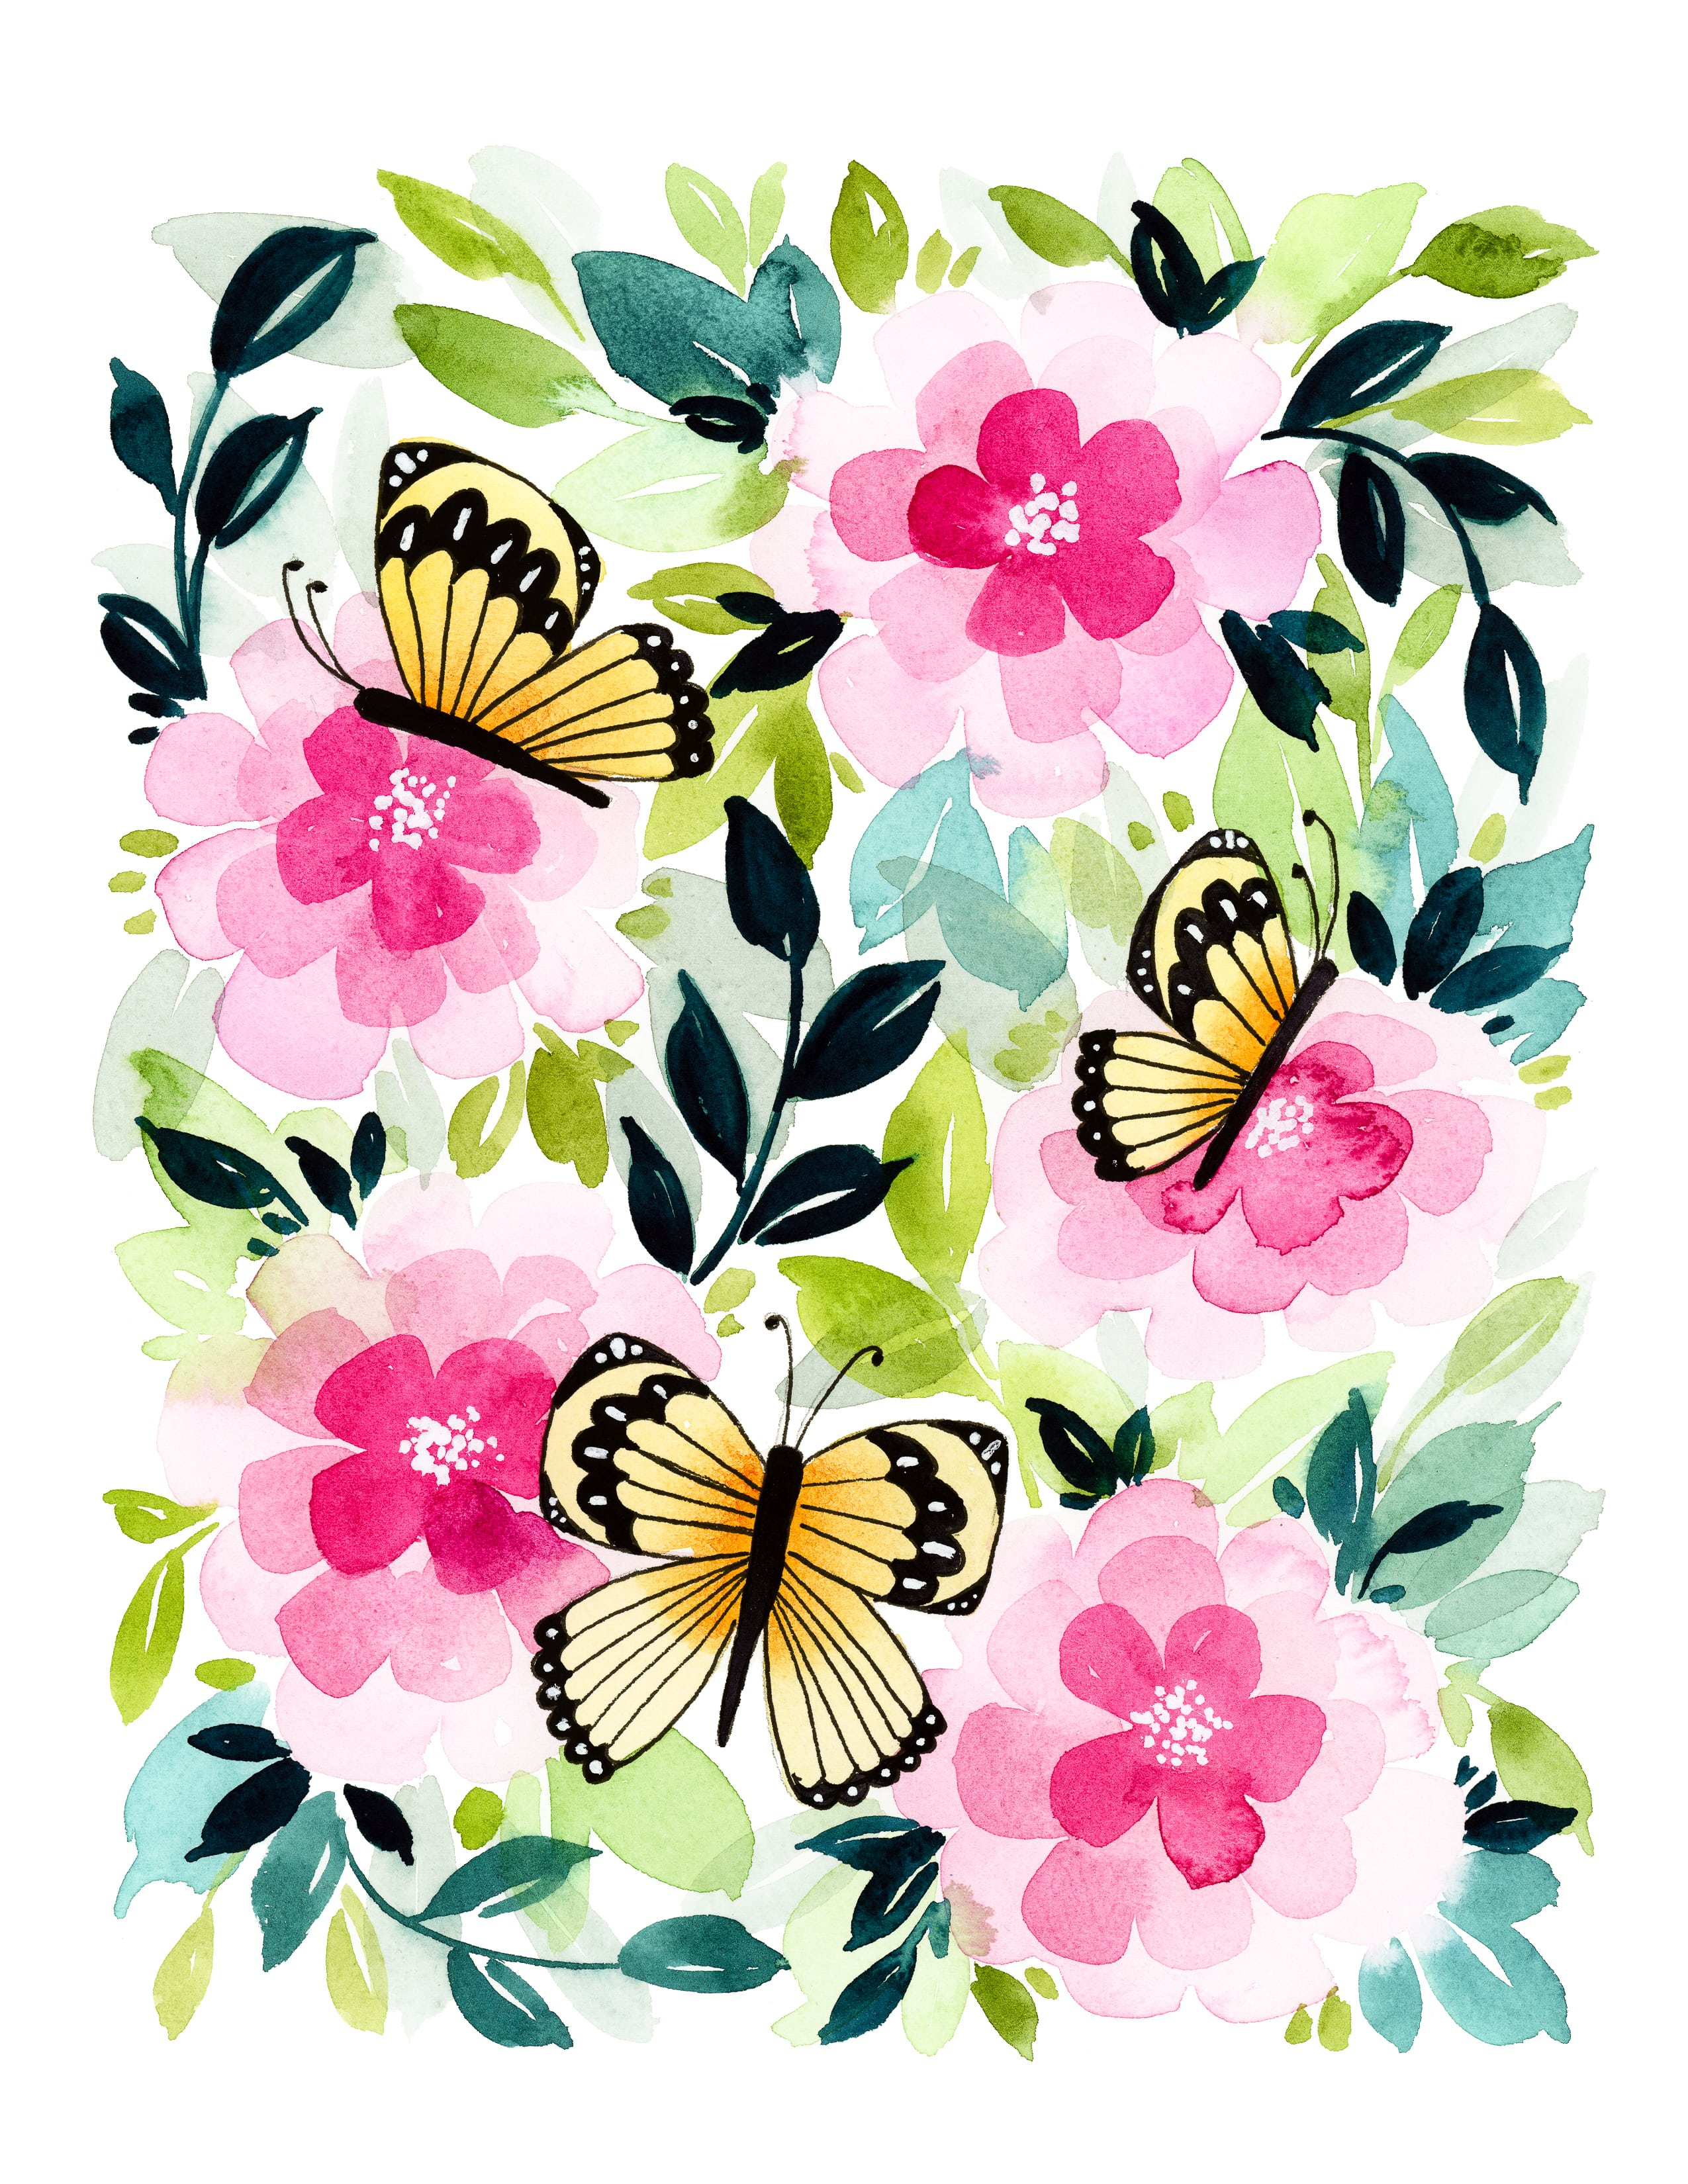 Free-Printable-Butterfly-Garden-Card-1 - Tinselbox - Free Printable Butterfly